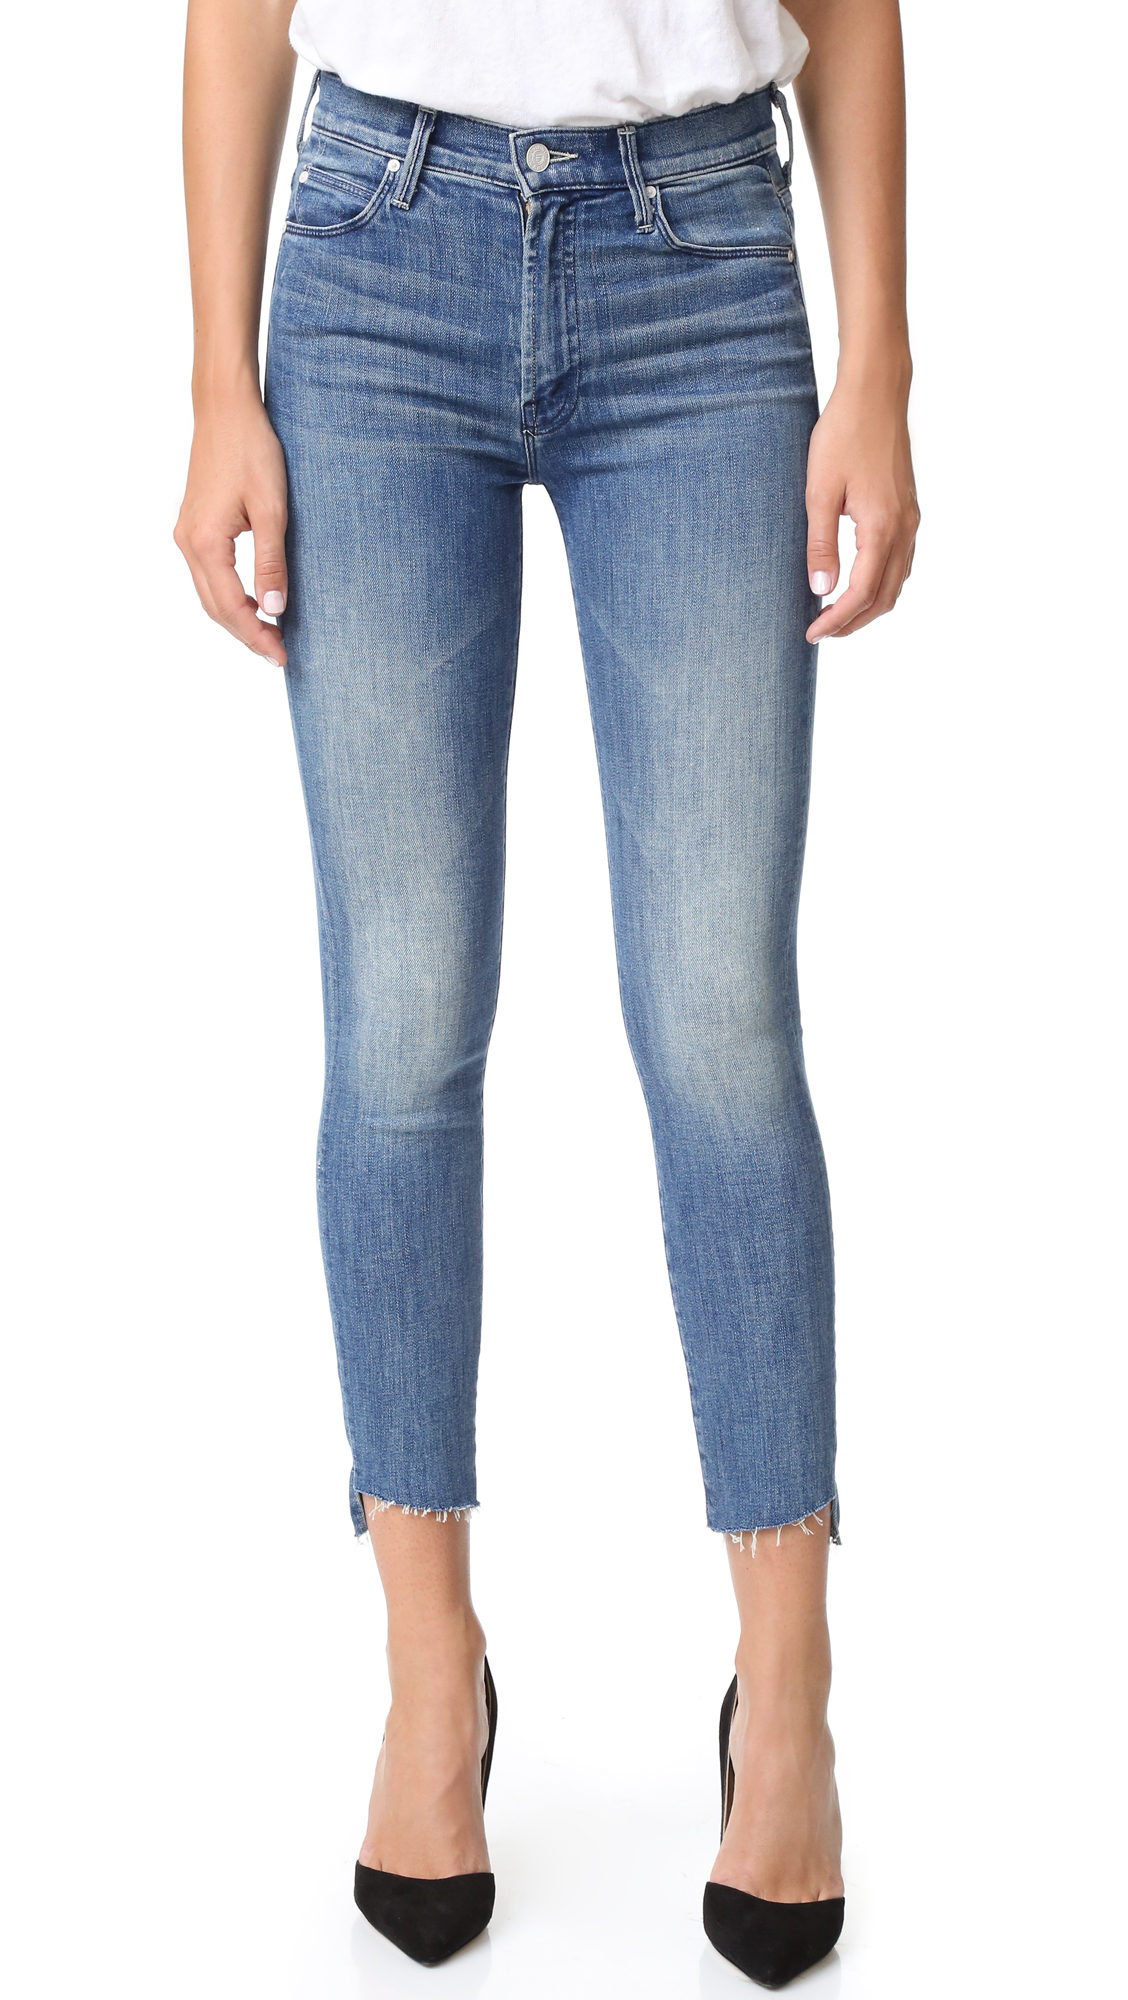 These high rise MOTHER jeans gain vintage inspired charm from raw leg openings, shredded holes, and heavy fading. 5 pocket styling. Button fly. Fabric: Stretch denim. 98% cotton/2% elastane. Wash cold. Made in the USA. Imported materials. Measurements